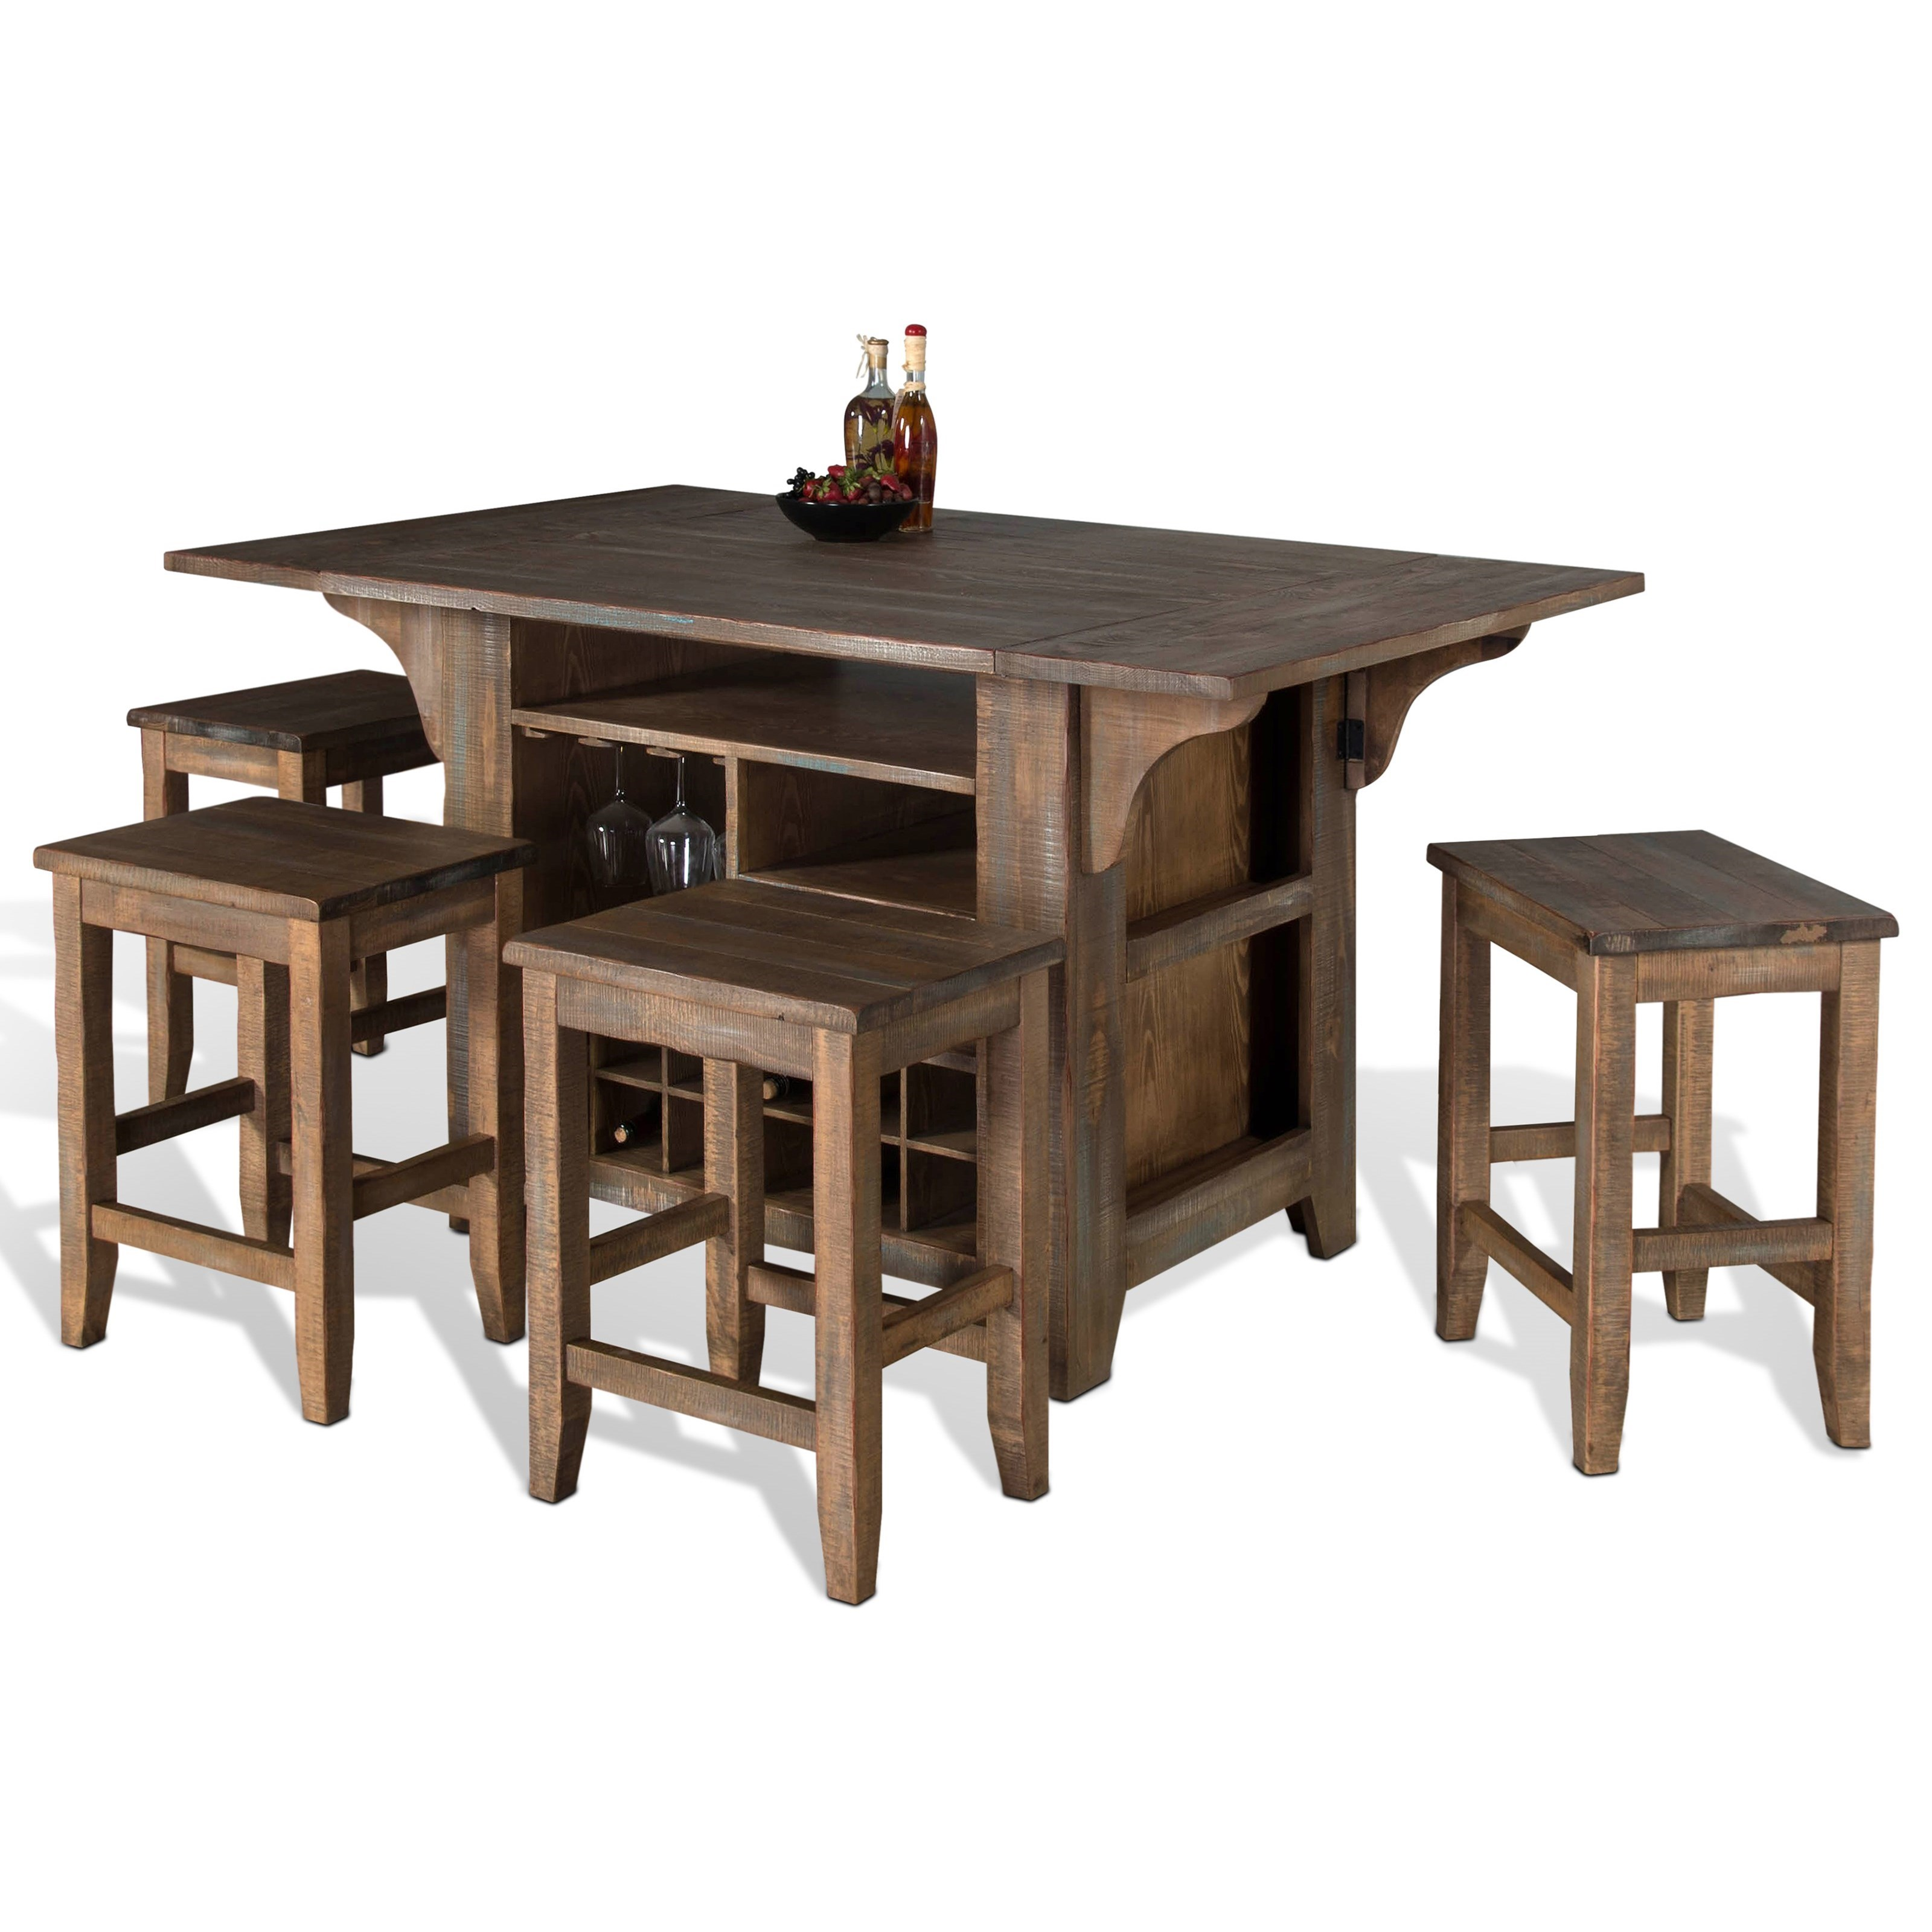 Sunny Designs Puebla 5 Piece Kitchen Island With Drop Leaves Set Suburban Furniture Pub